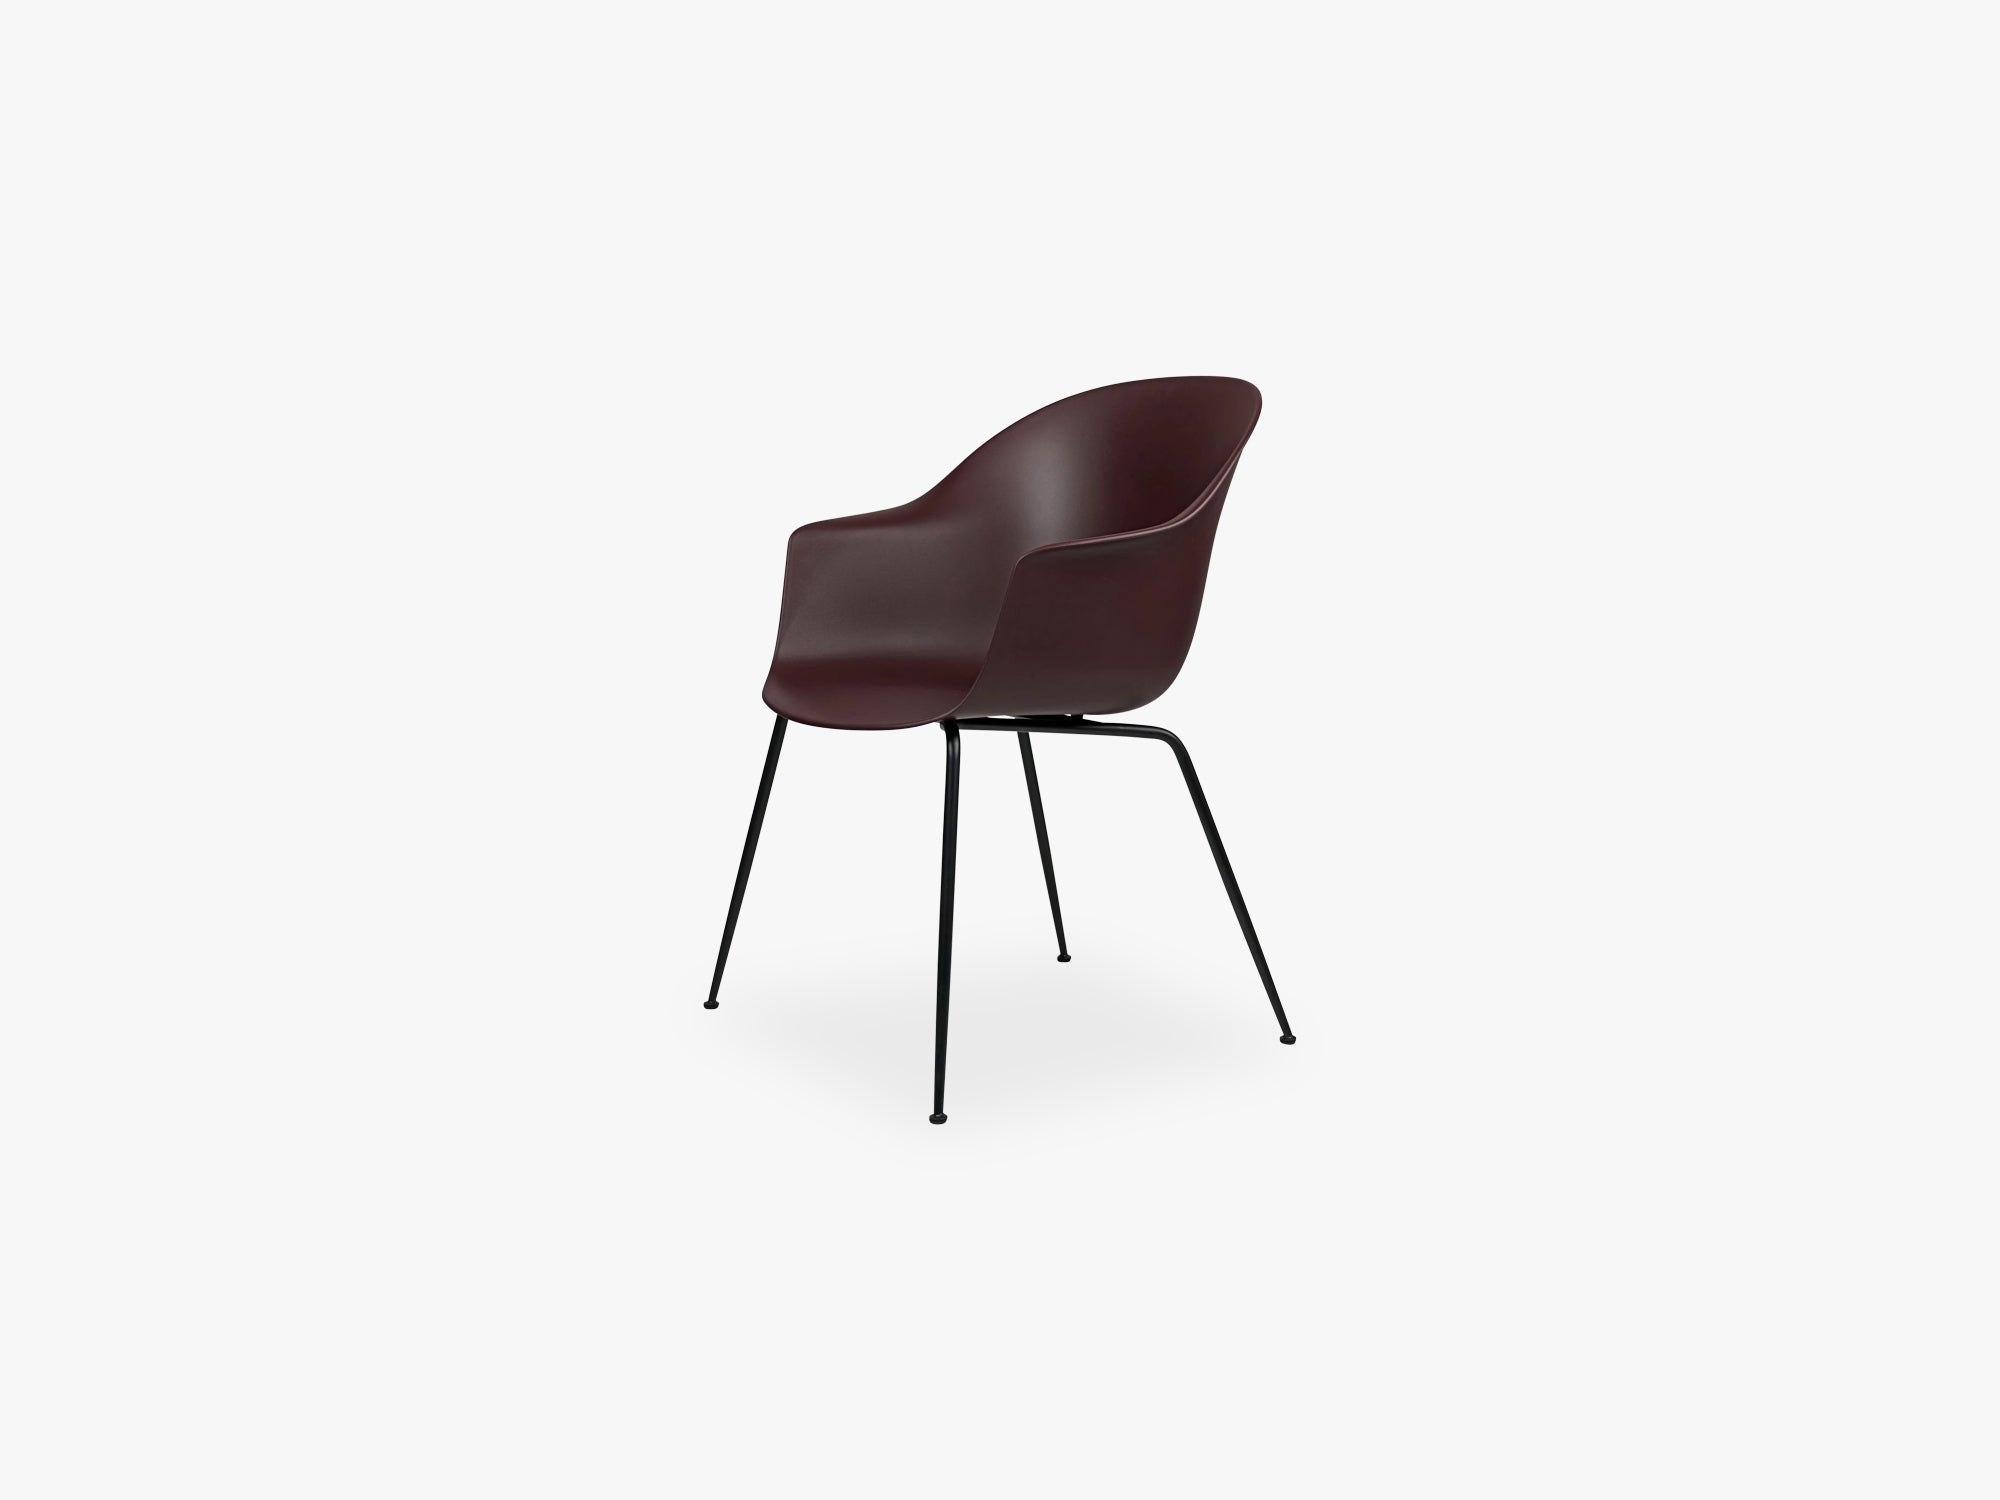 Bat Dining Chair - Skal m Conic base - Black Matt, Dark Pink fra GUBI